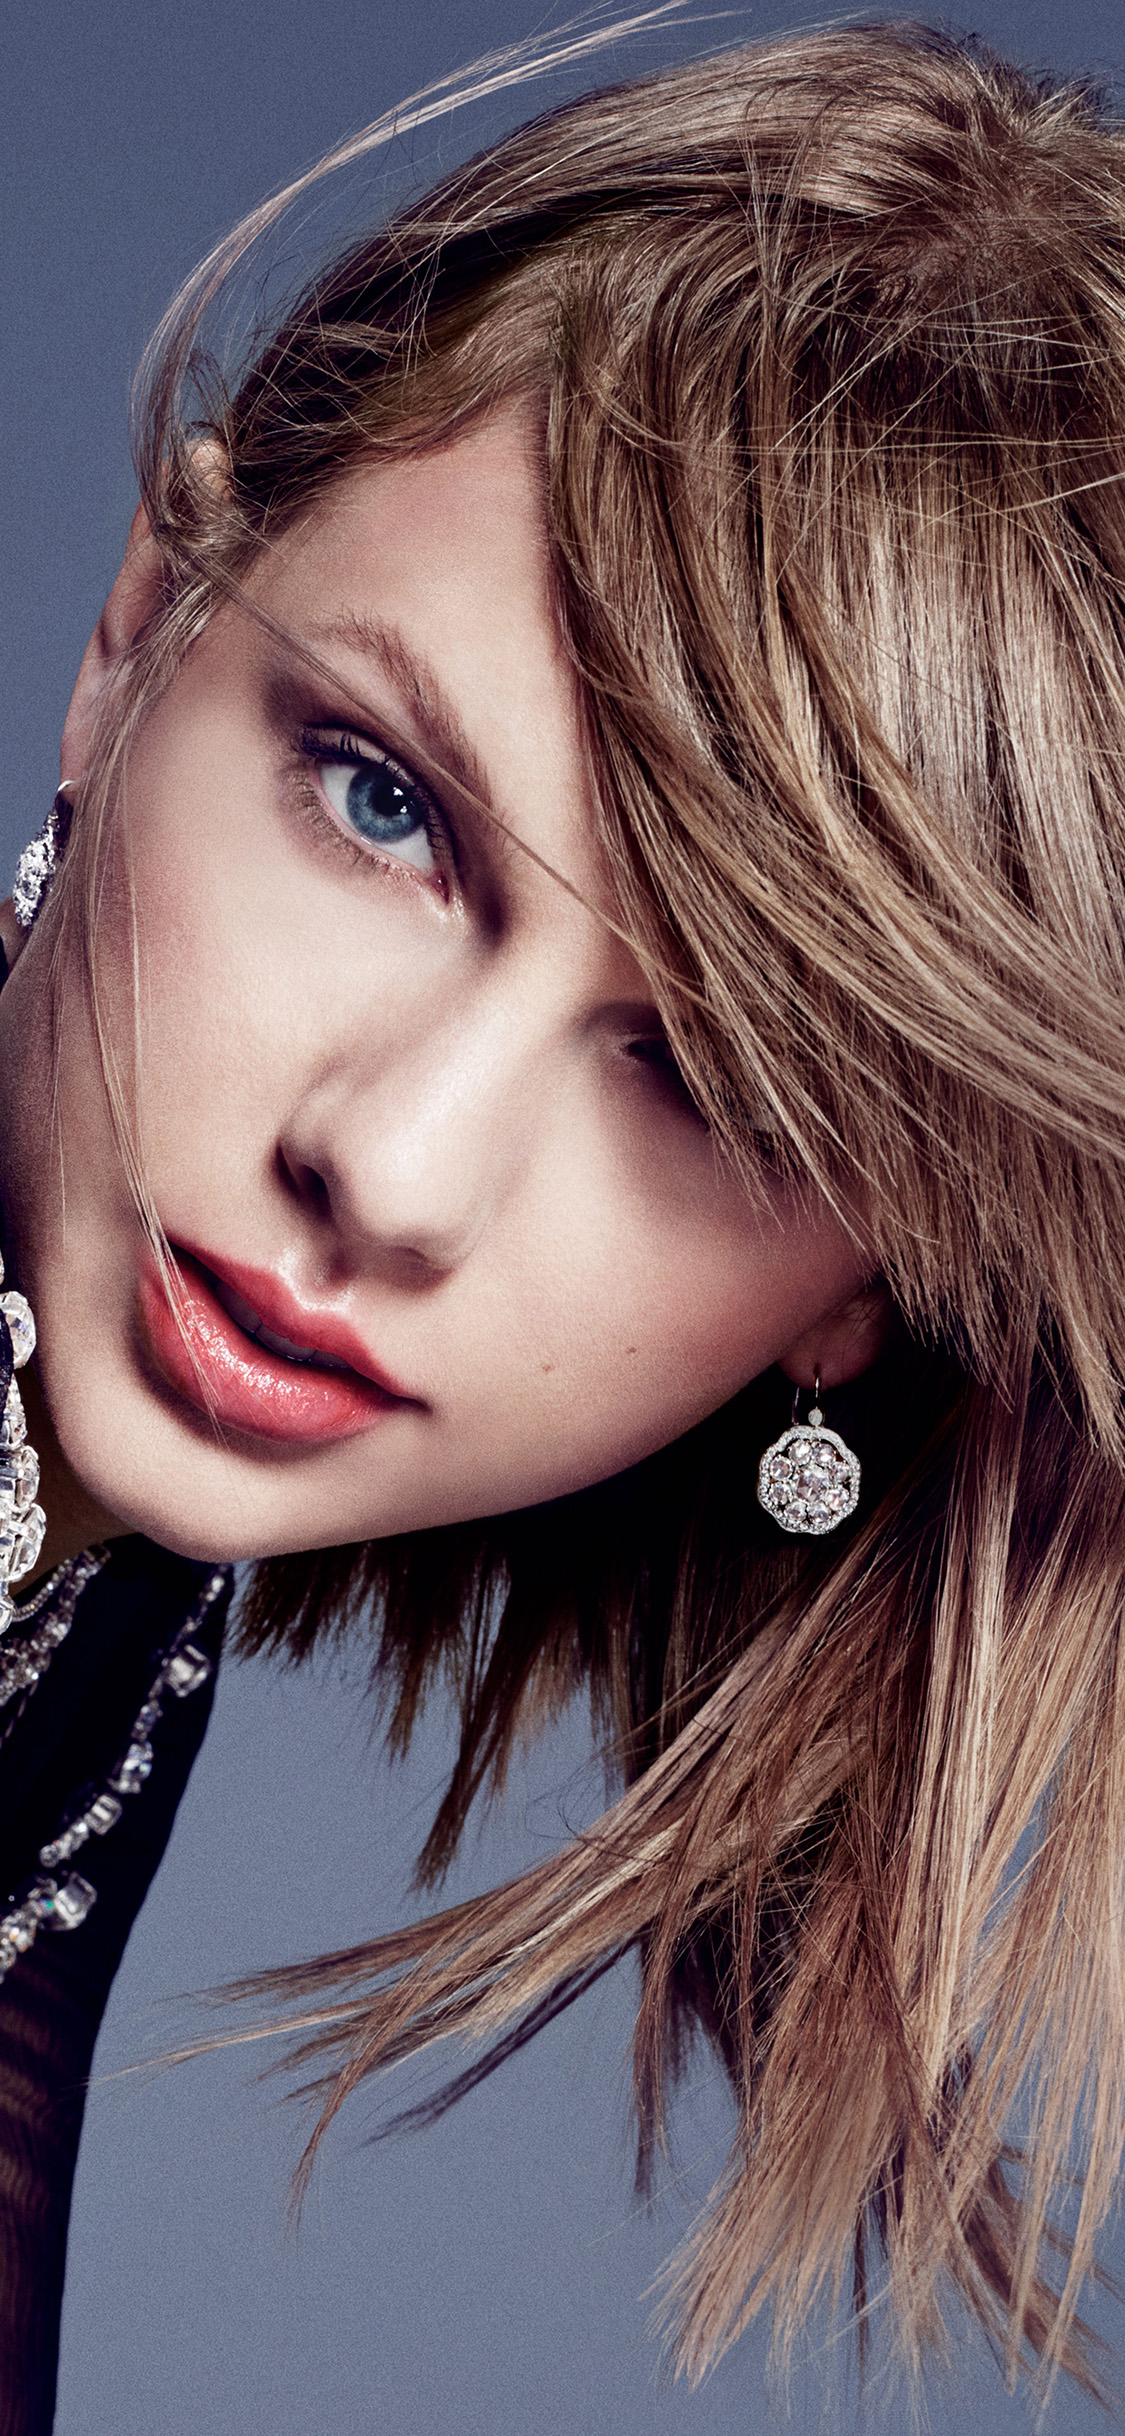 iPhonexpapers.com-Apple-iPhone-wallpaper-hs76-girl-swift-music-face